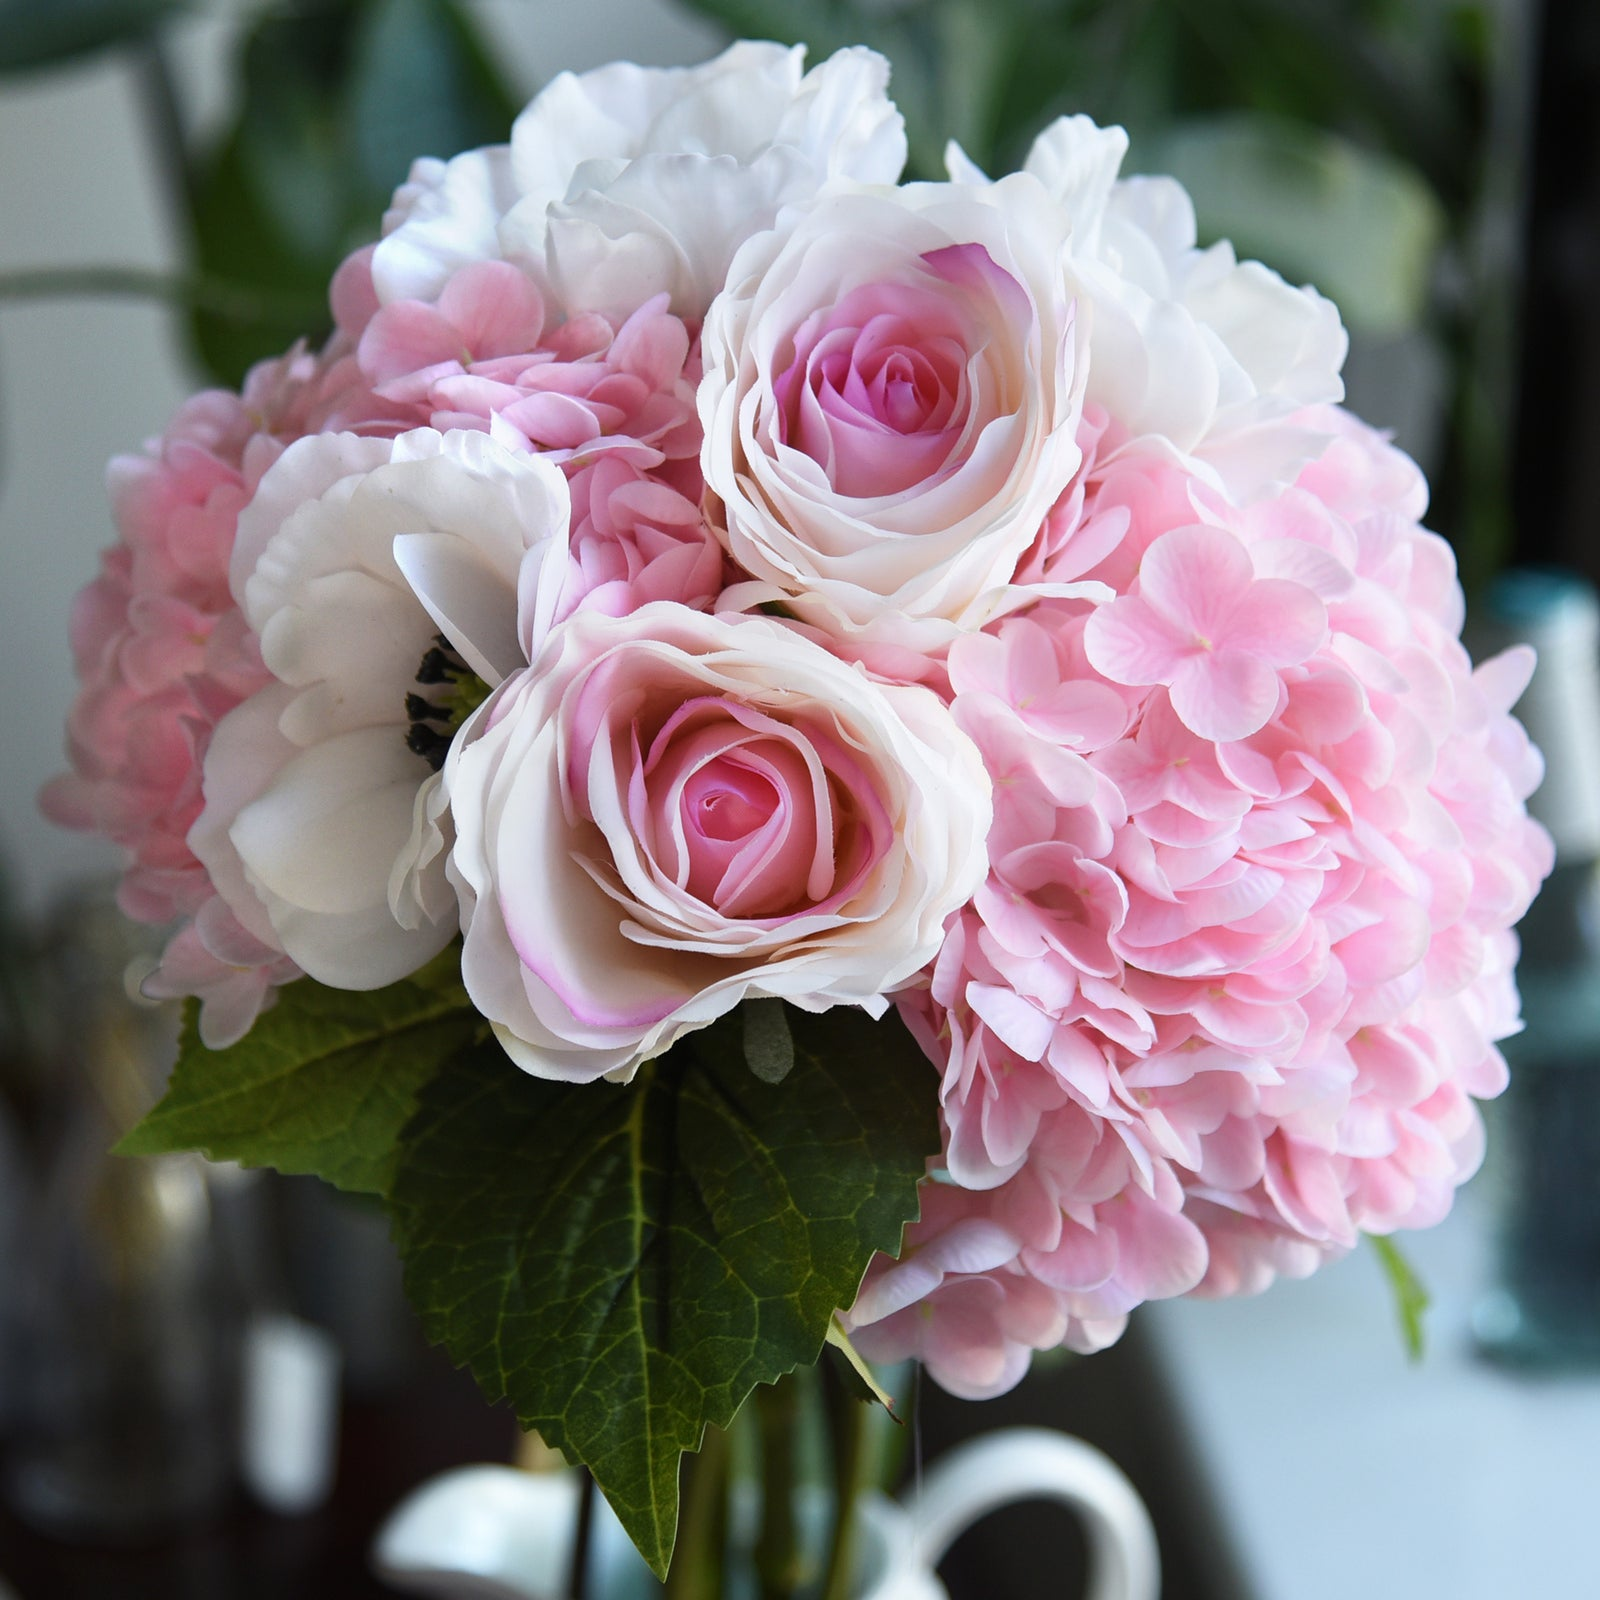 FiveSeasonStuff 2 Stems Real Touch Petals and Leaves Artificial Hydrangea Flowers Long Stem Floral Arrangement (Mixed Pink)